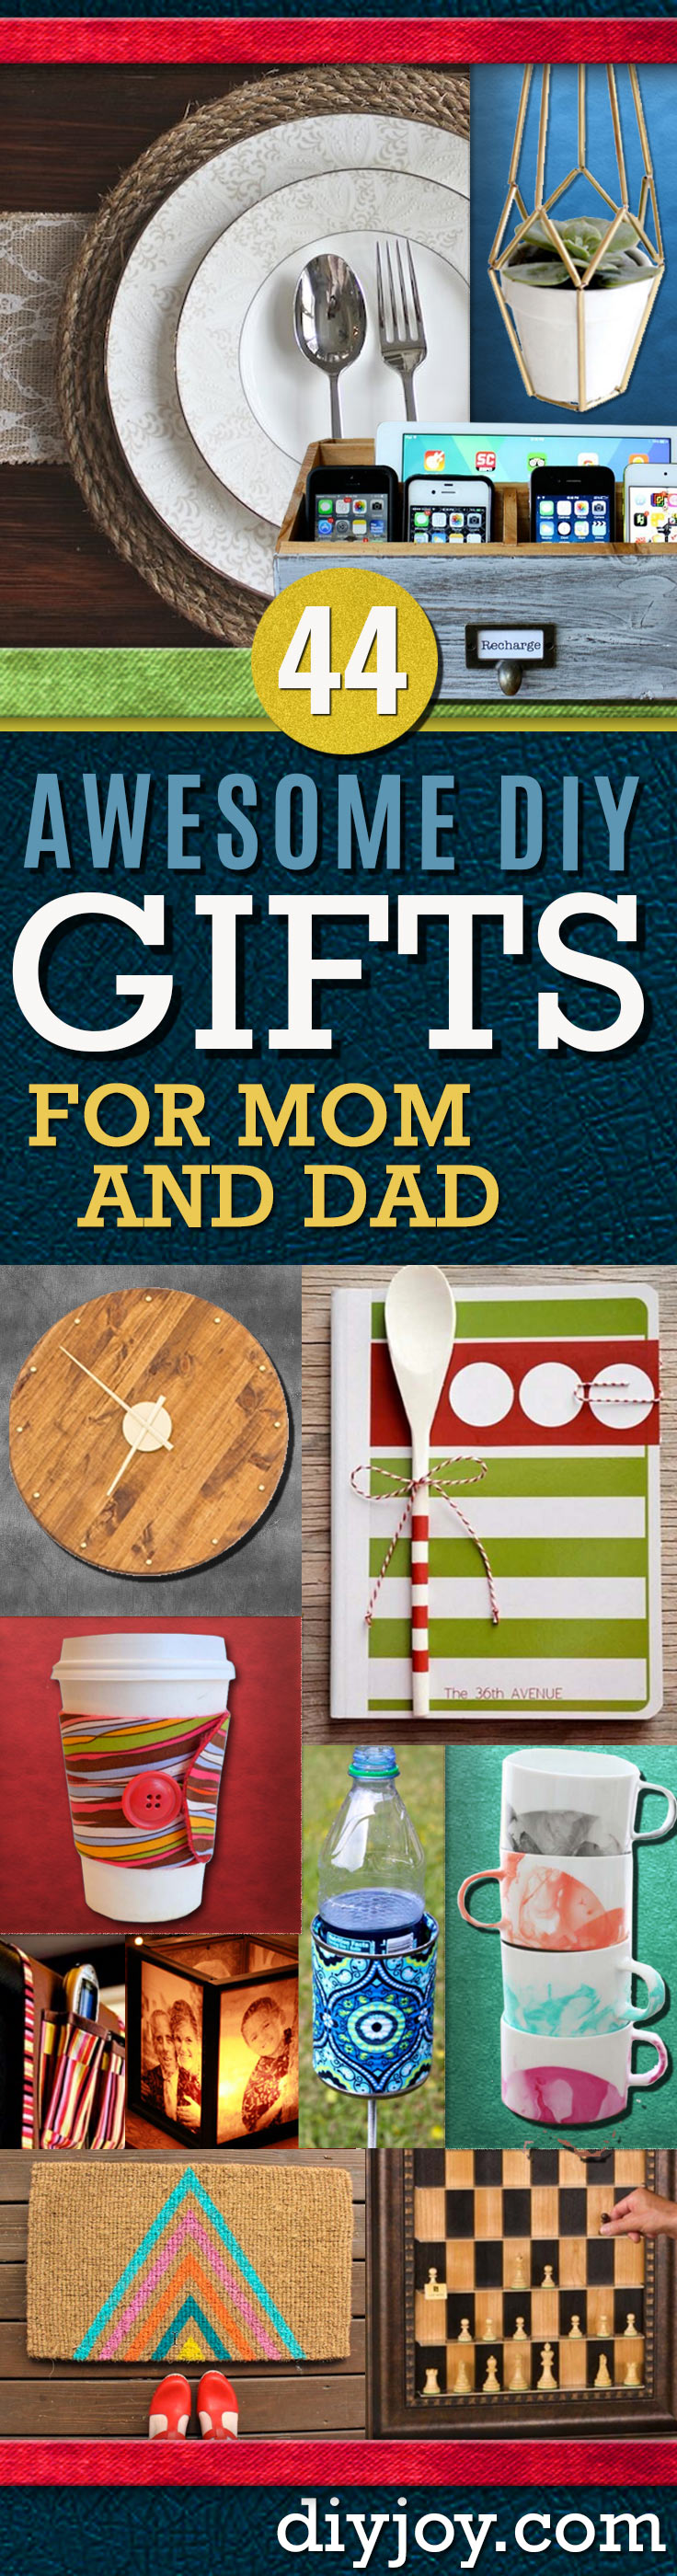 Awesome diy gift ideas mom and dad will love diy gifts for mom and dad homemade christmas gift ideas for your parents cool solutioingenieria Gallery